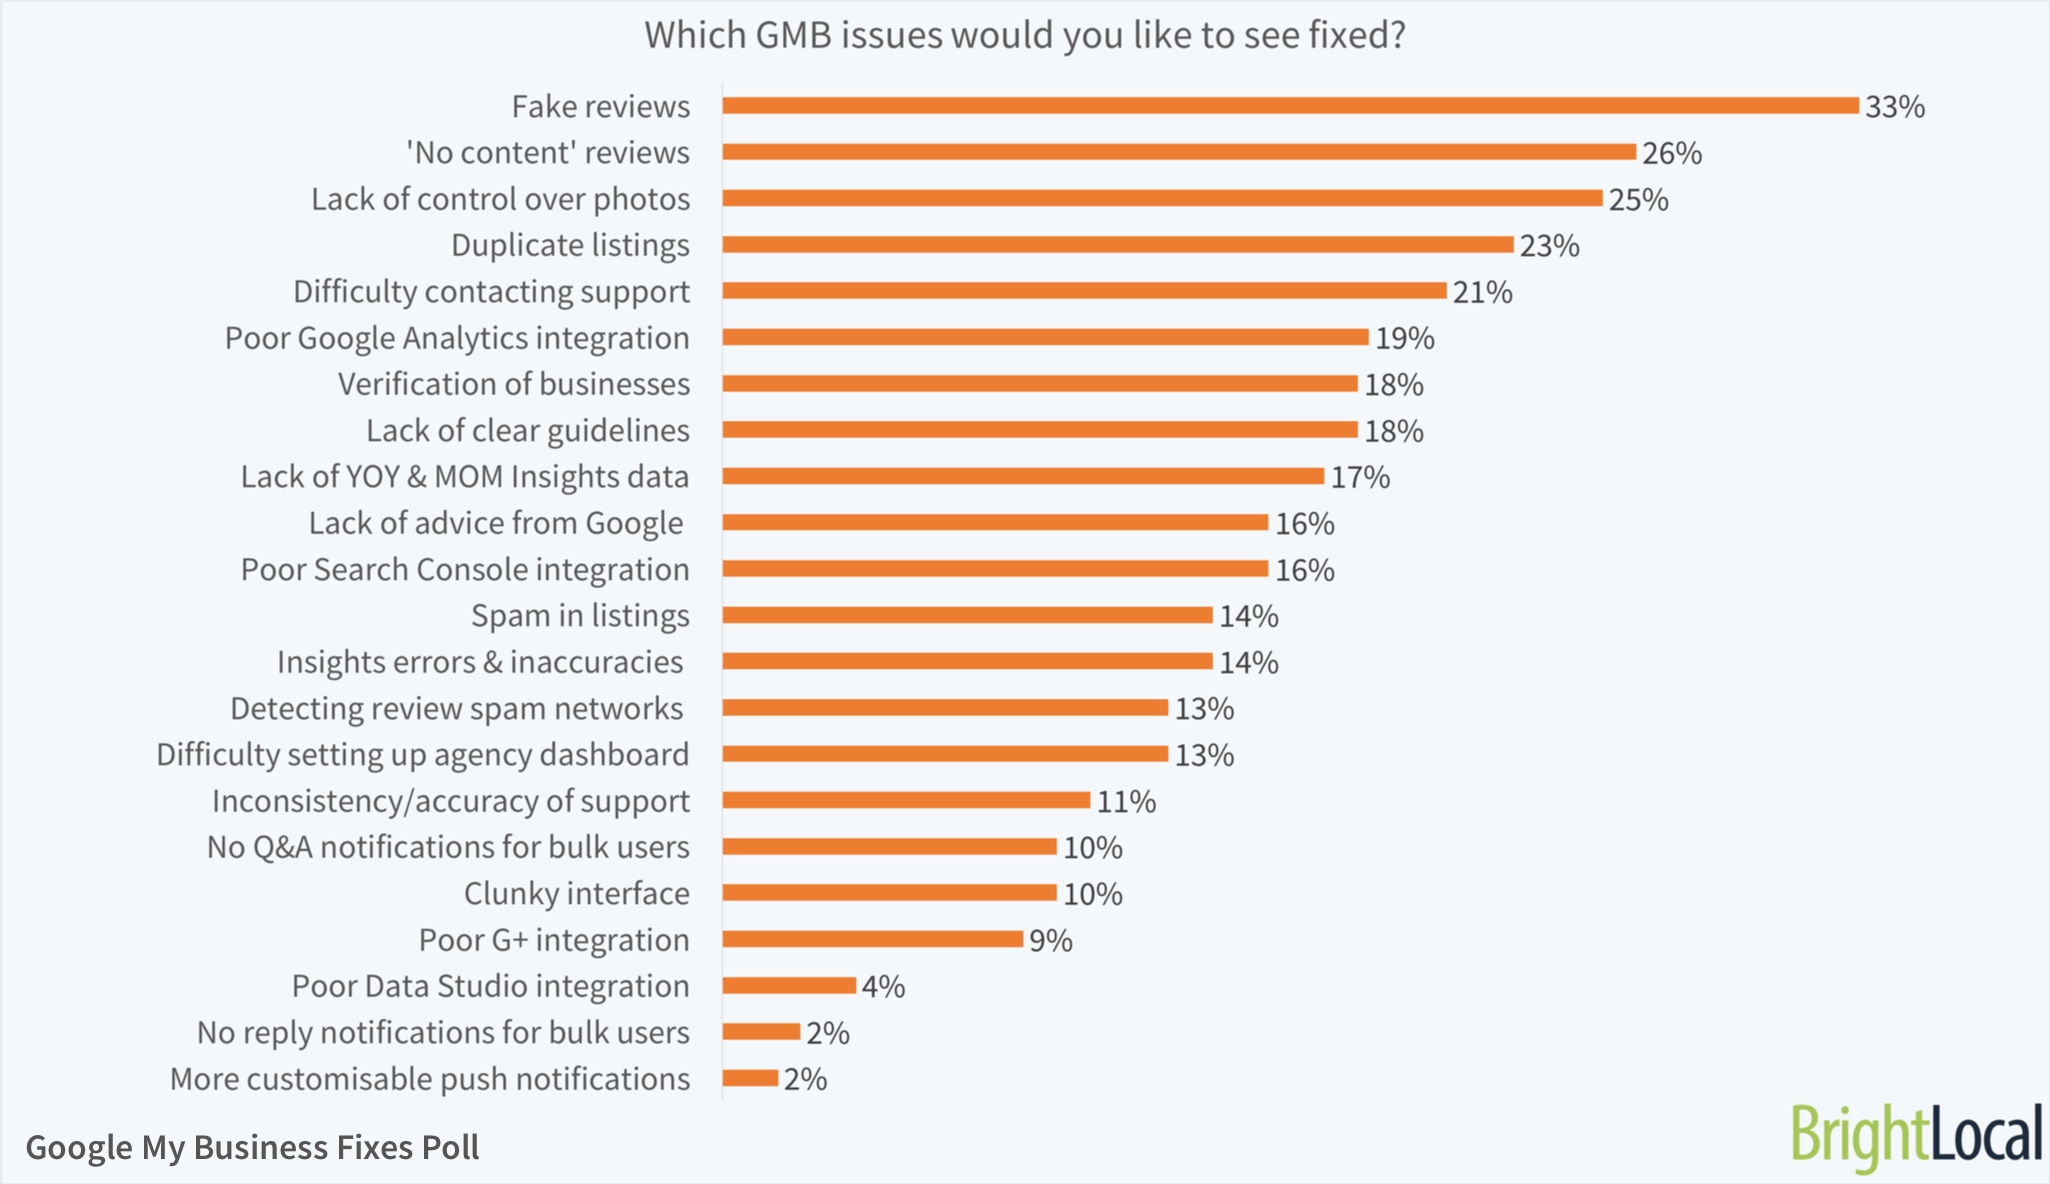 Which GMB issues would you like to see fixed?